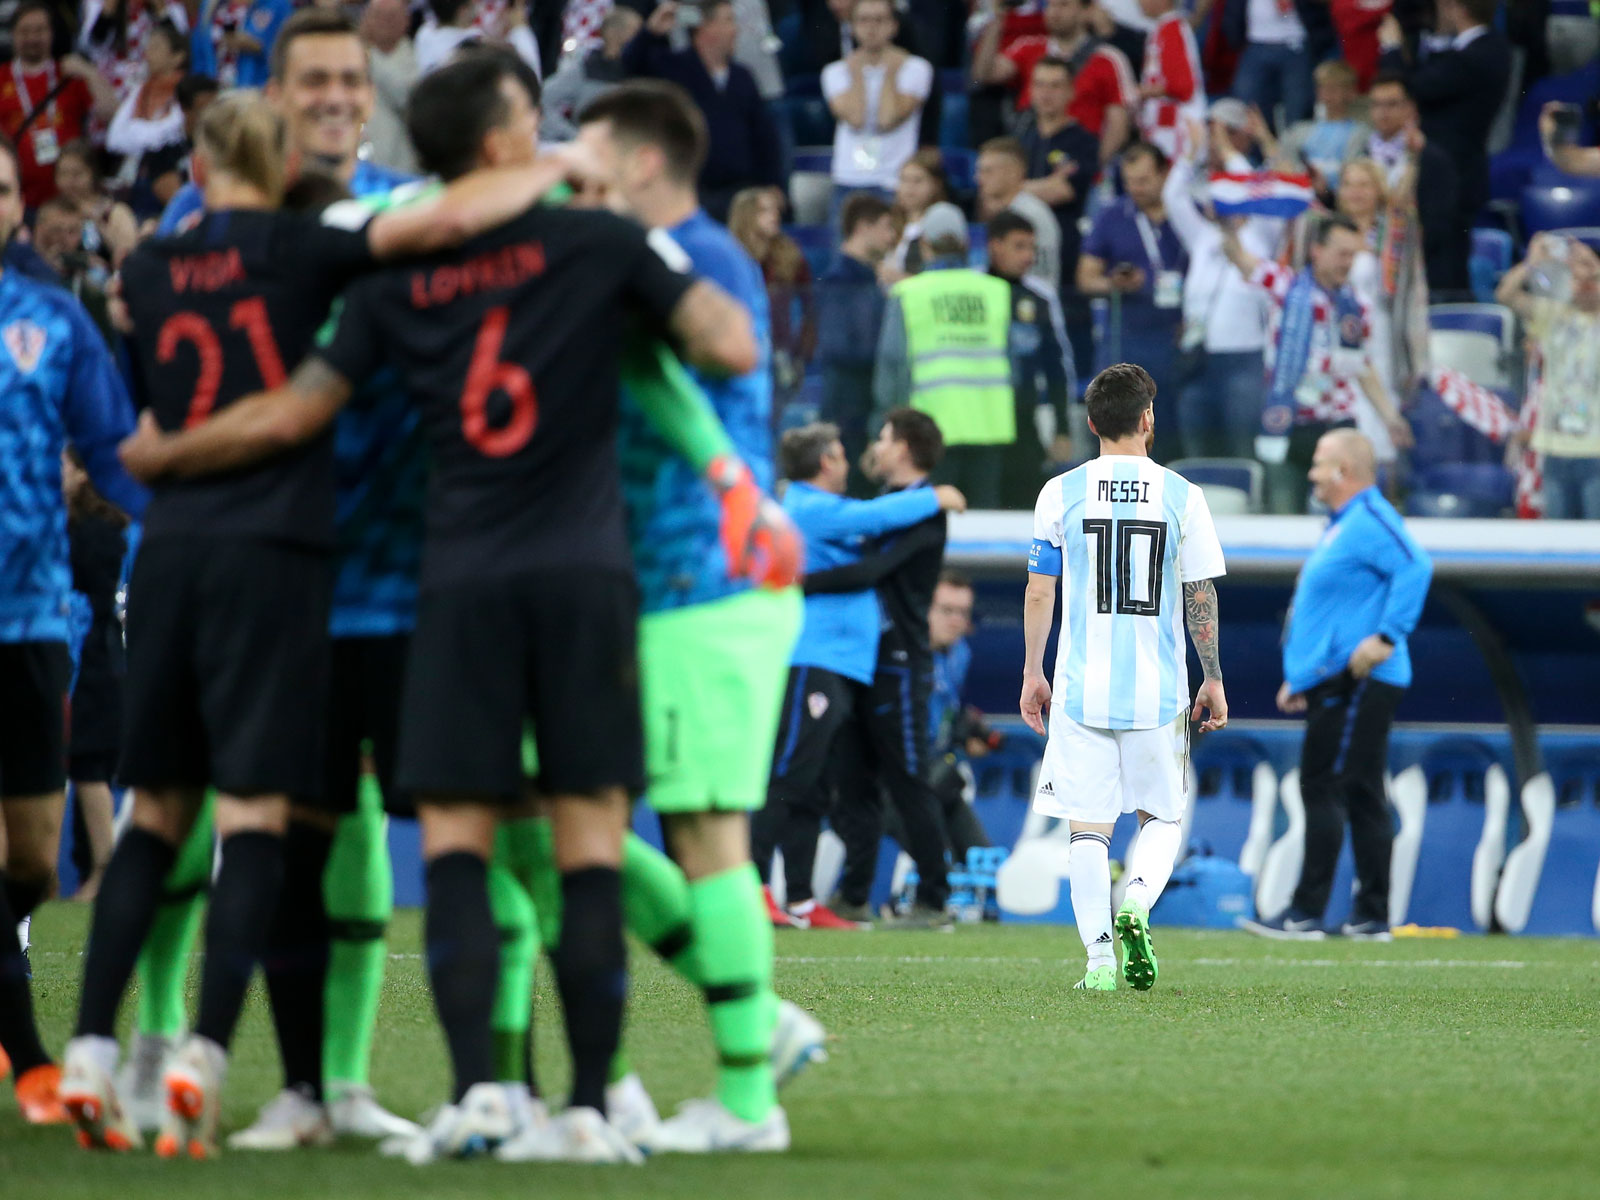 Lionel Messi leaves the field as Croatia celebrates a 3-0 win over Argentina at the 2018 World Cup